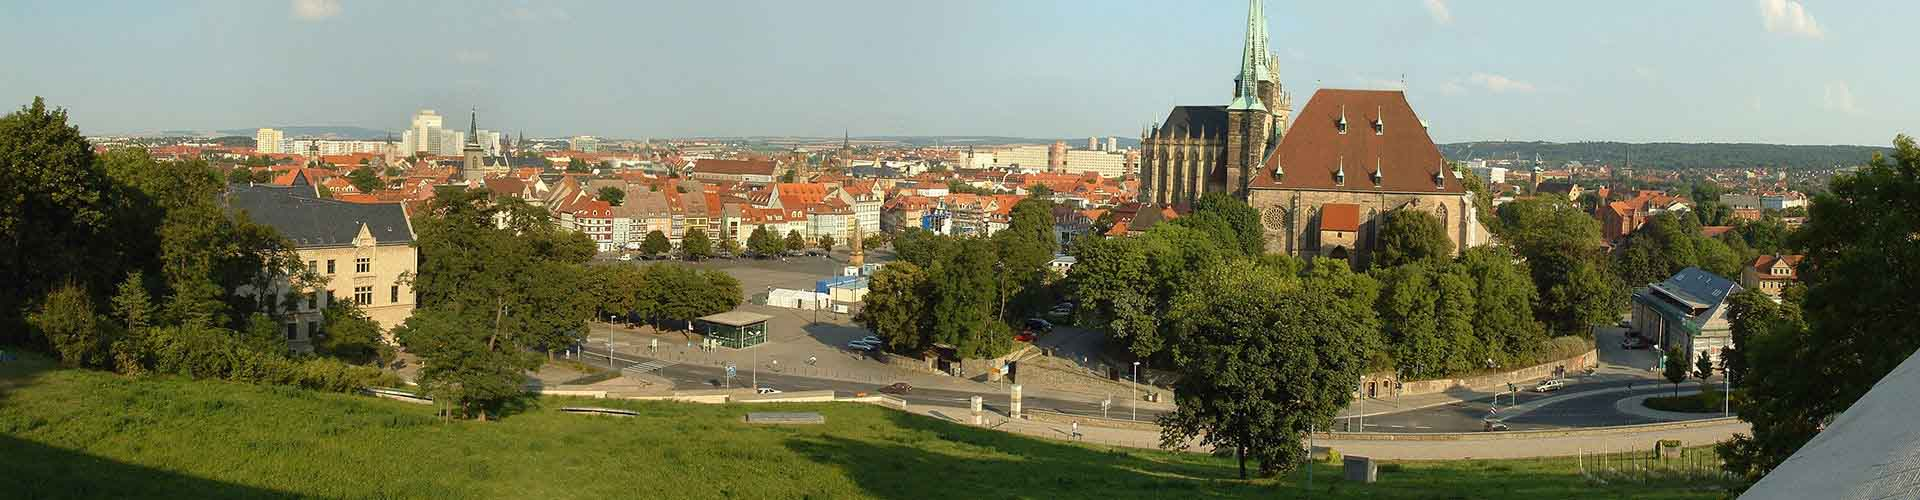 Erfurt – Hostels in Erfurt. Maps for Erfurt, Photos and Reviews for each hostel in Erfurt.